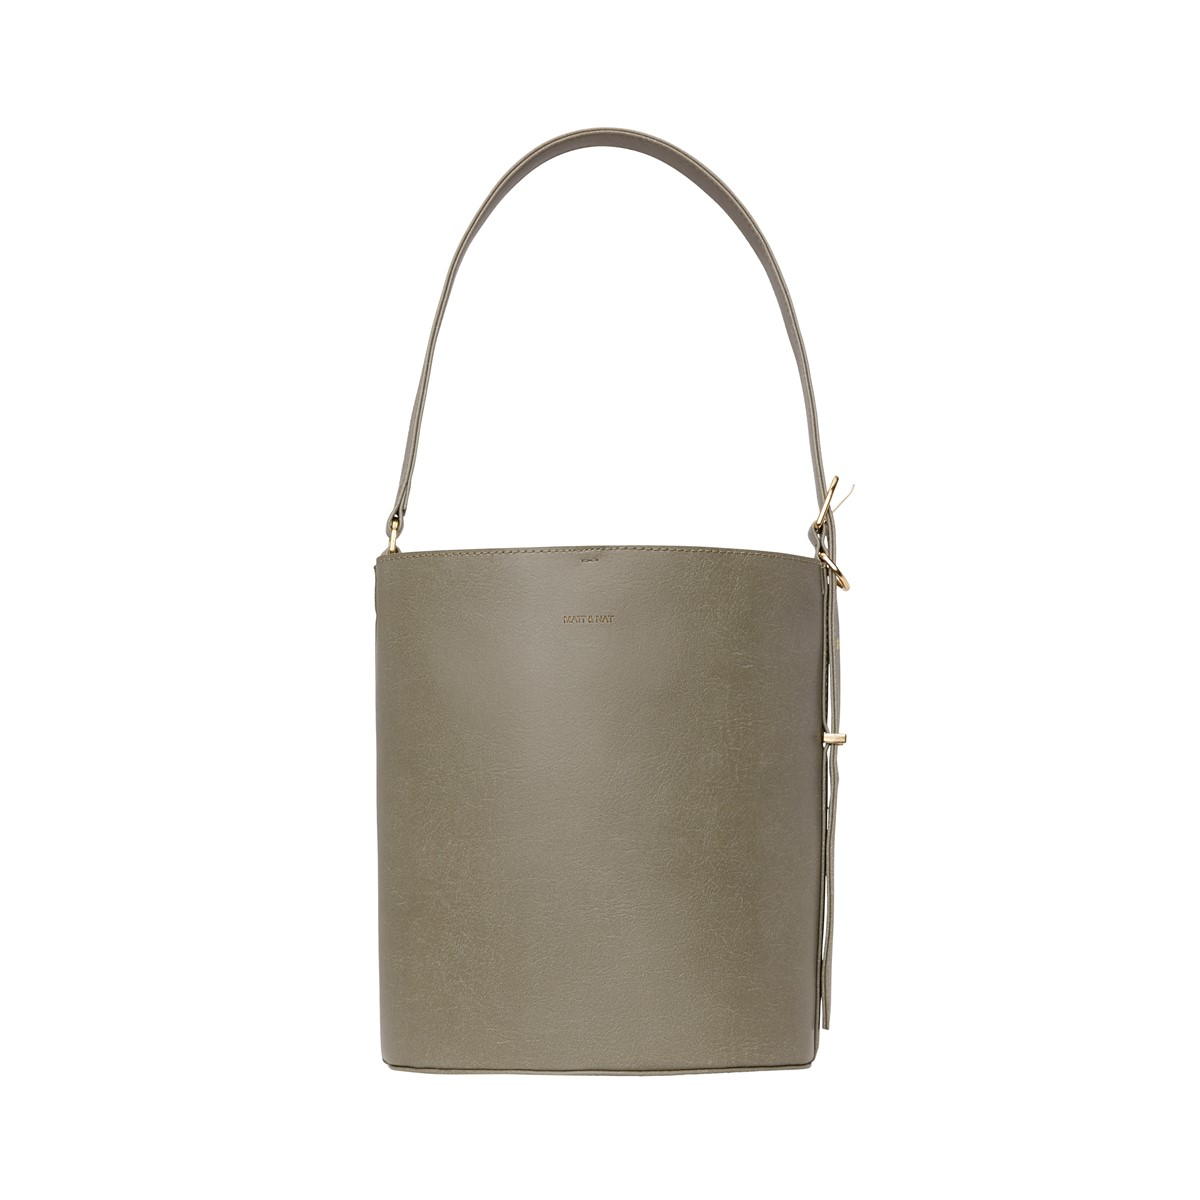 Azur Bucket Bag in Green